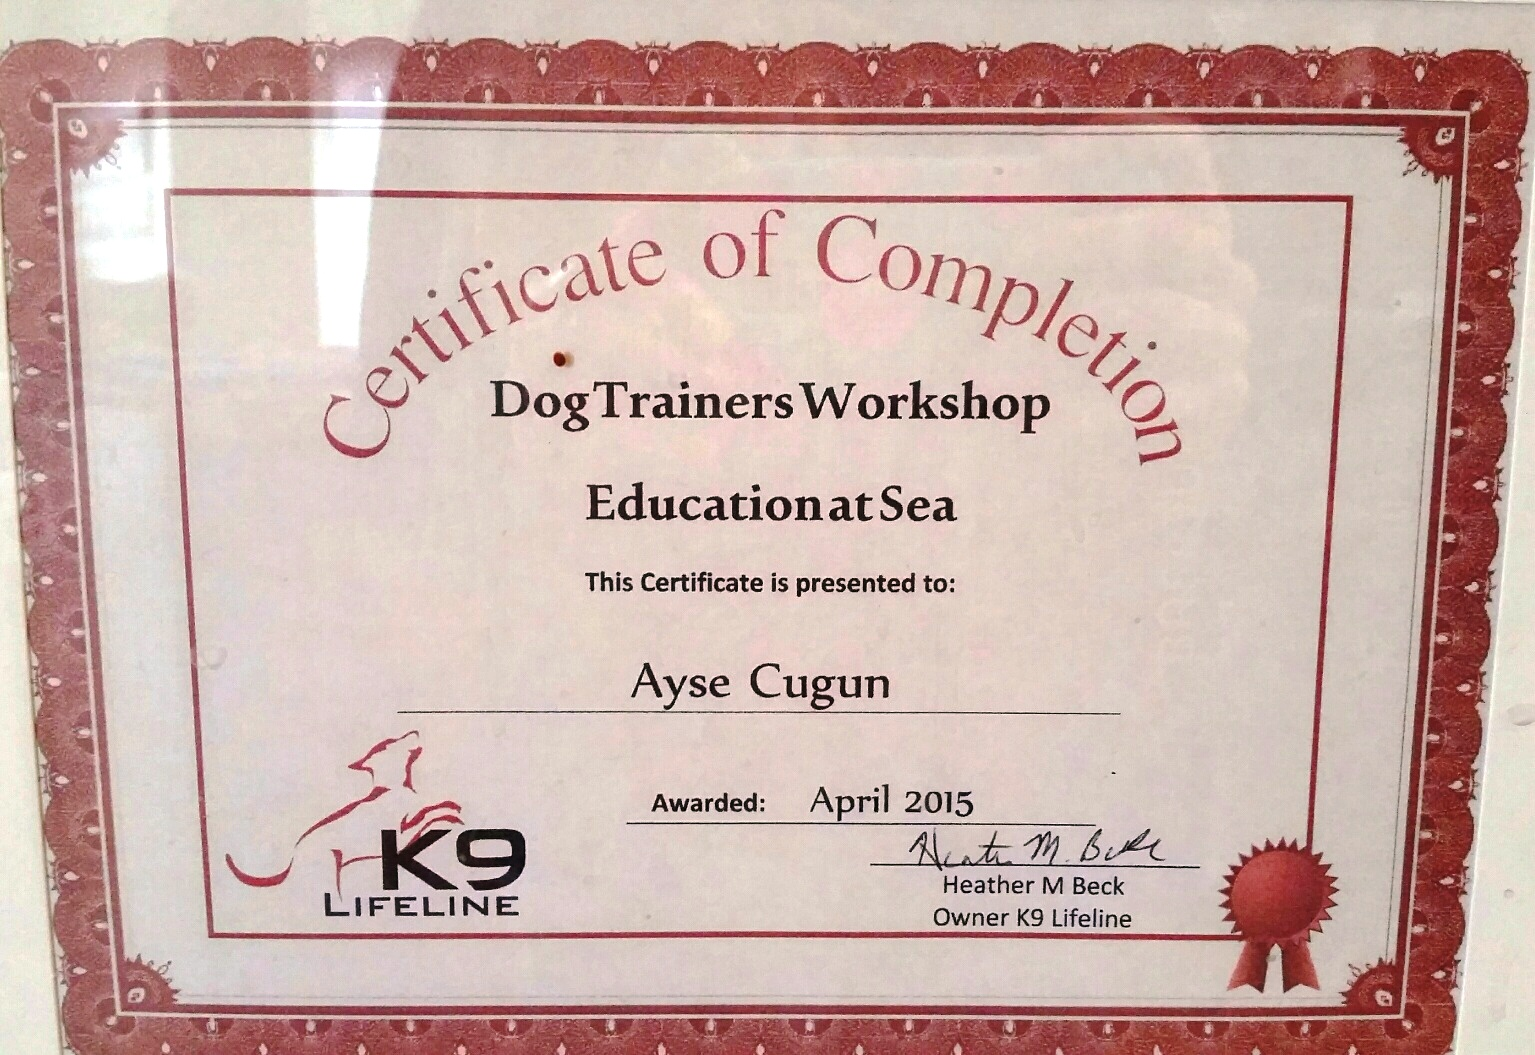 ayse at sea certificate